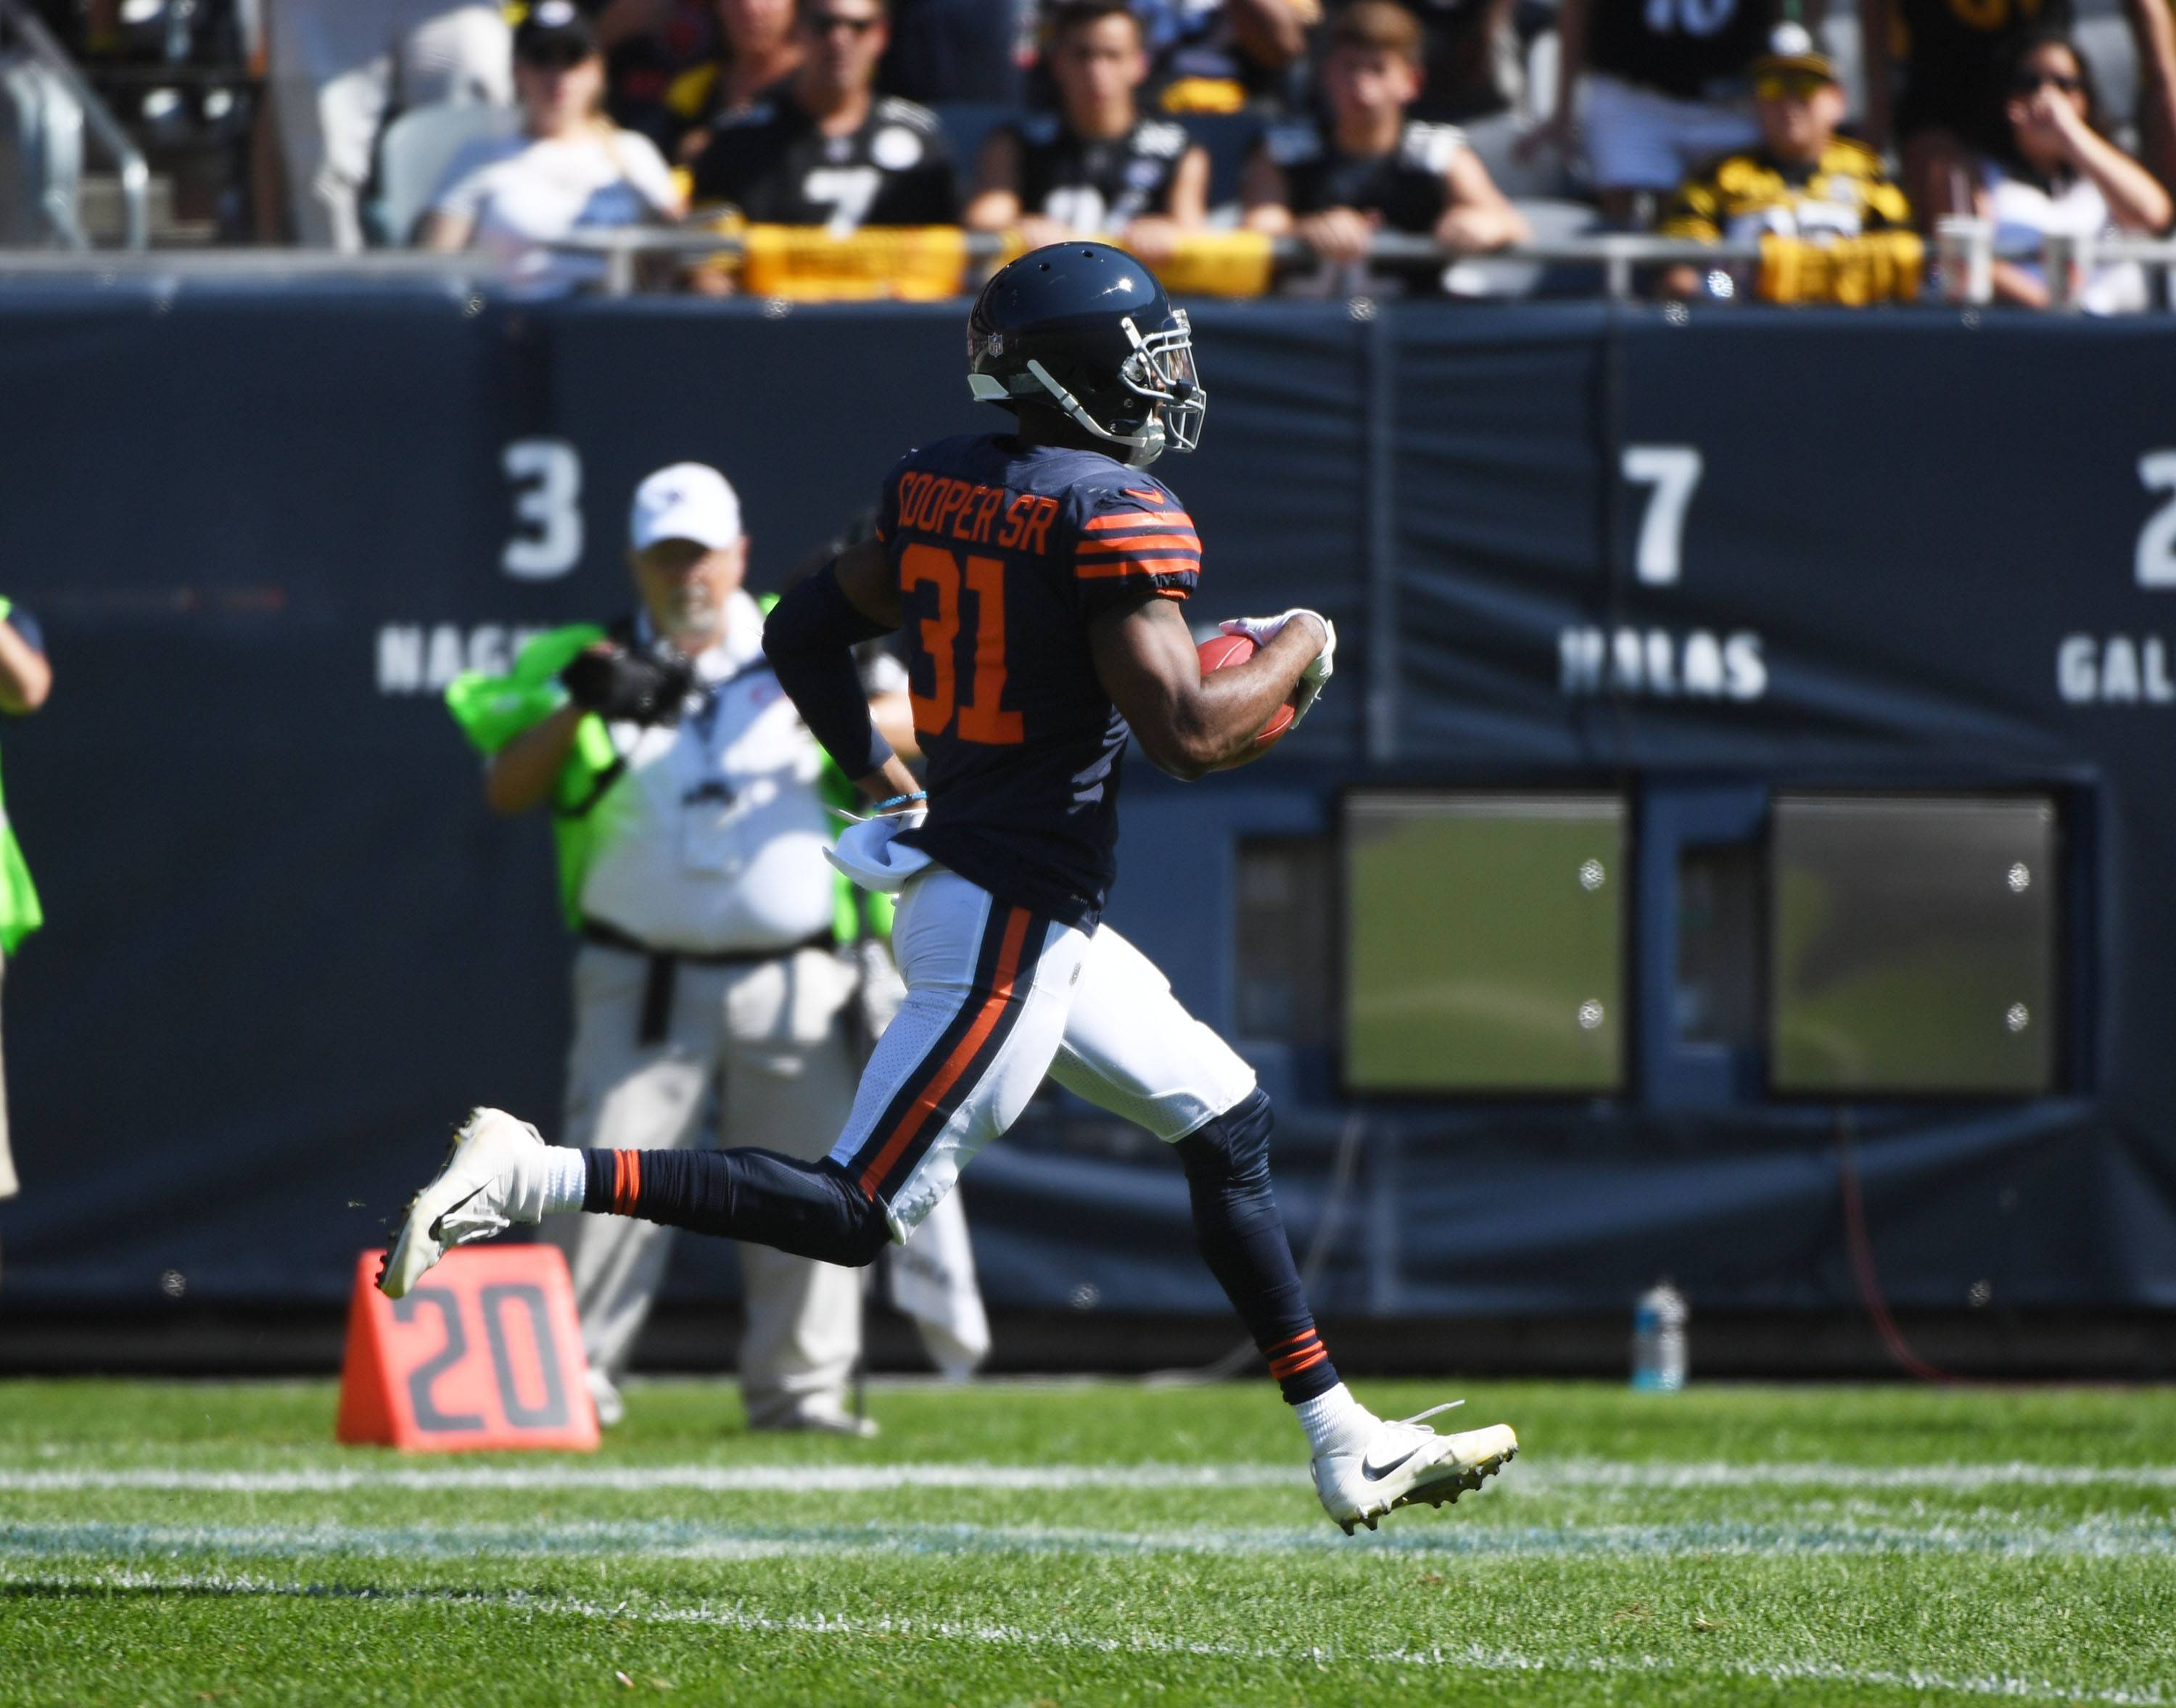 Chicago Bears' Cooper relieved botched return didn't cost win